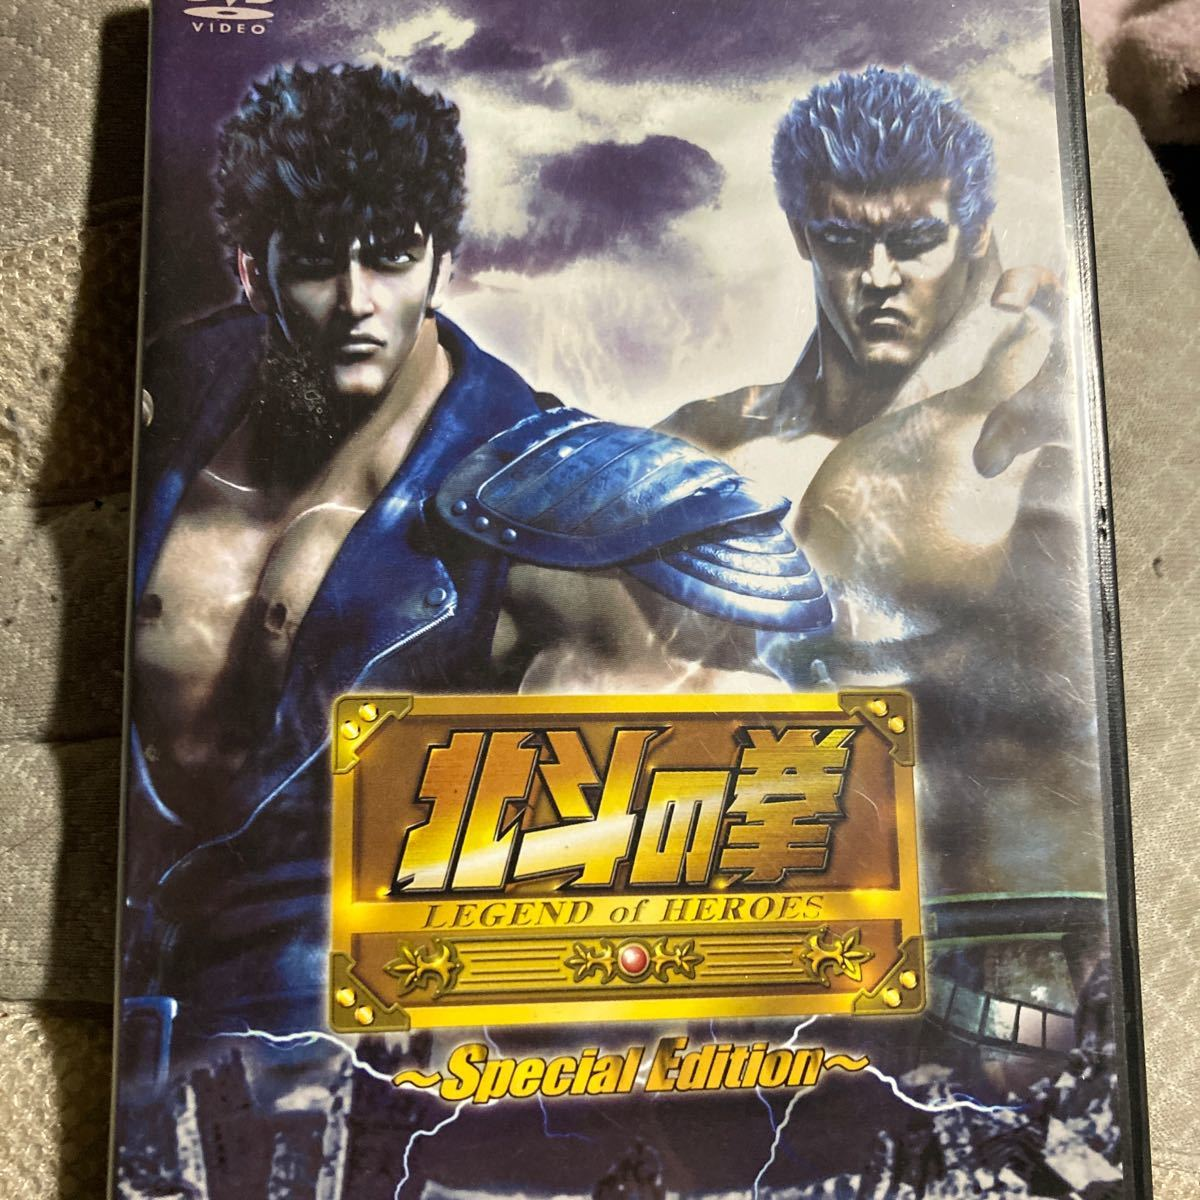 LEGEND OF HEROES SPECIAL EDITION  DVD